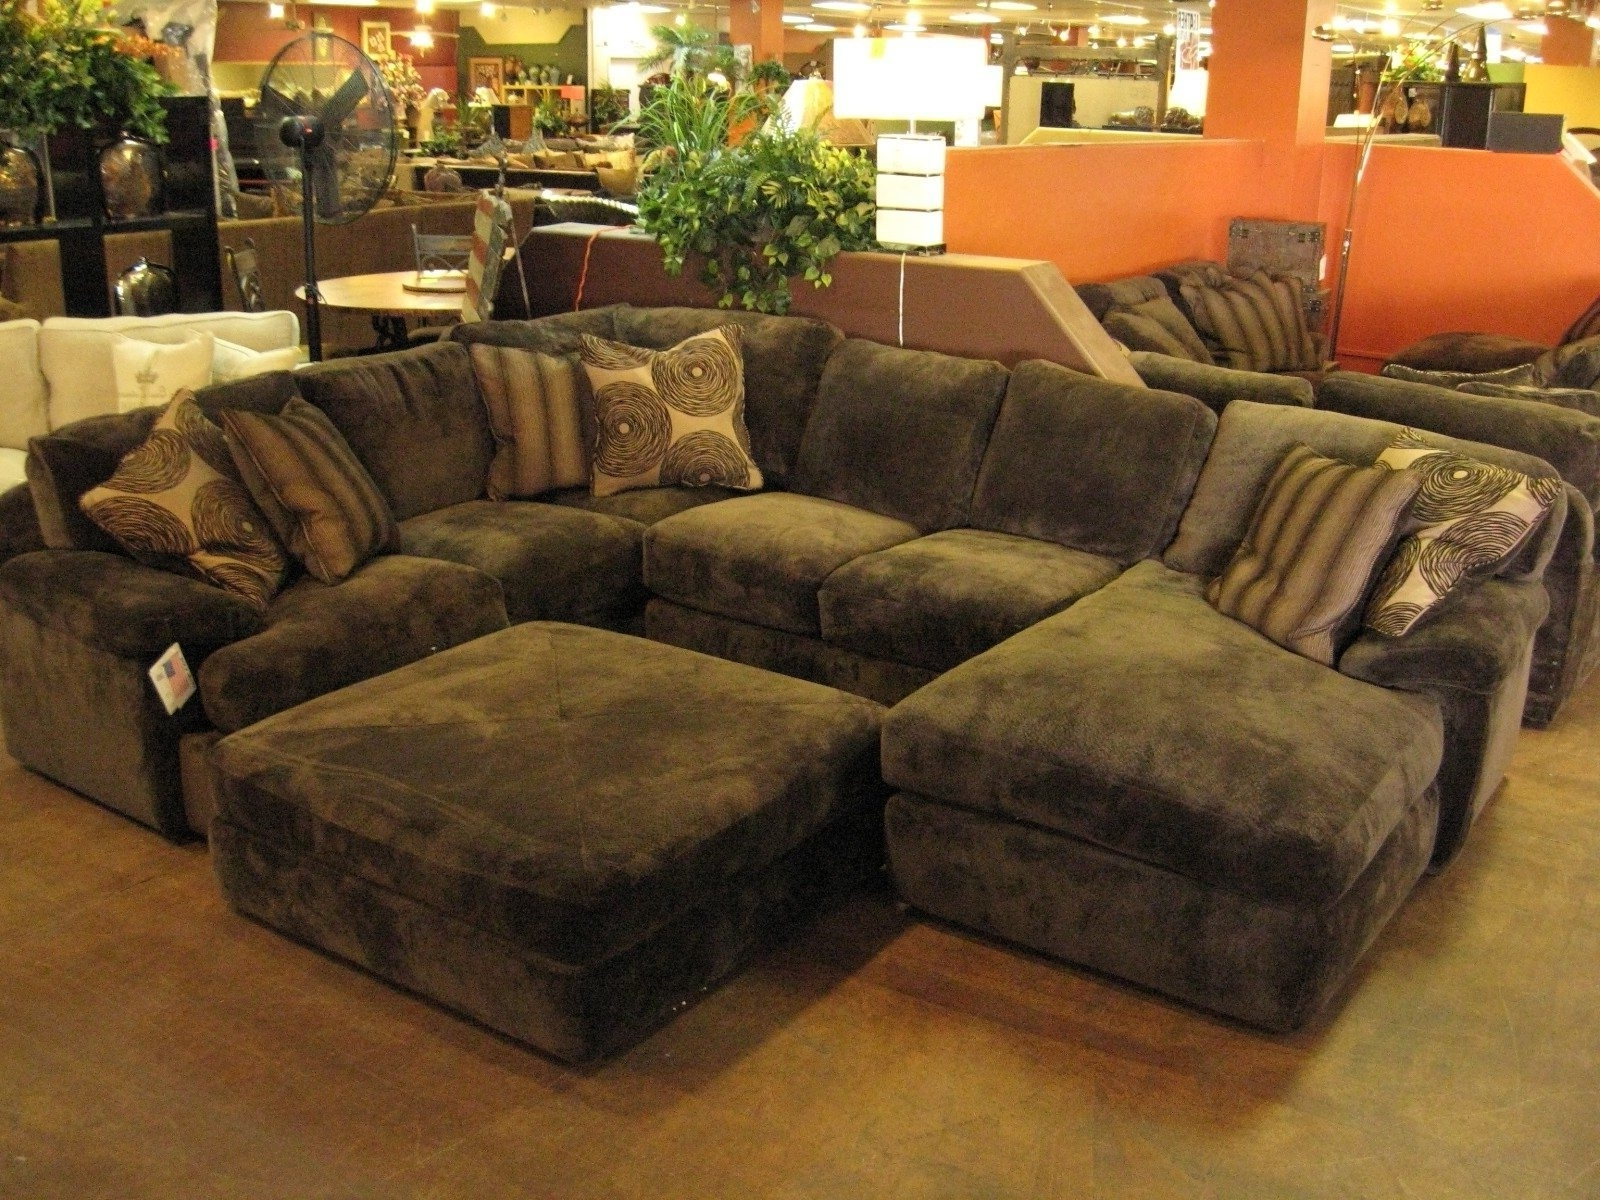 Sleeper Sofa Sectionals With Chaise Inside Most Popular Sofas: Sectional Sleeper Sofa (View 7 of 15)